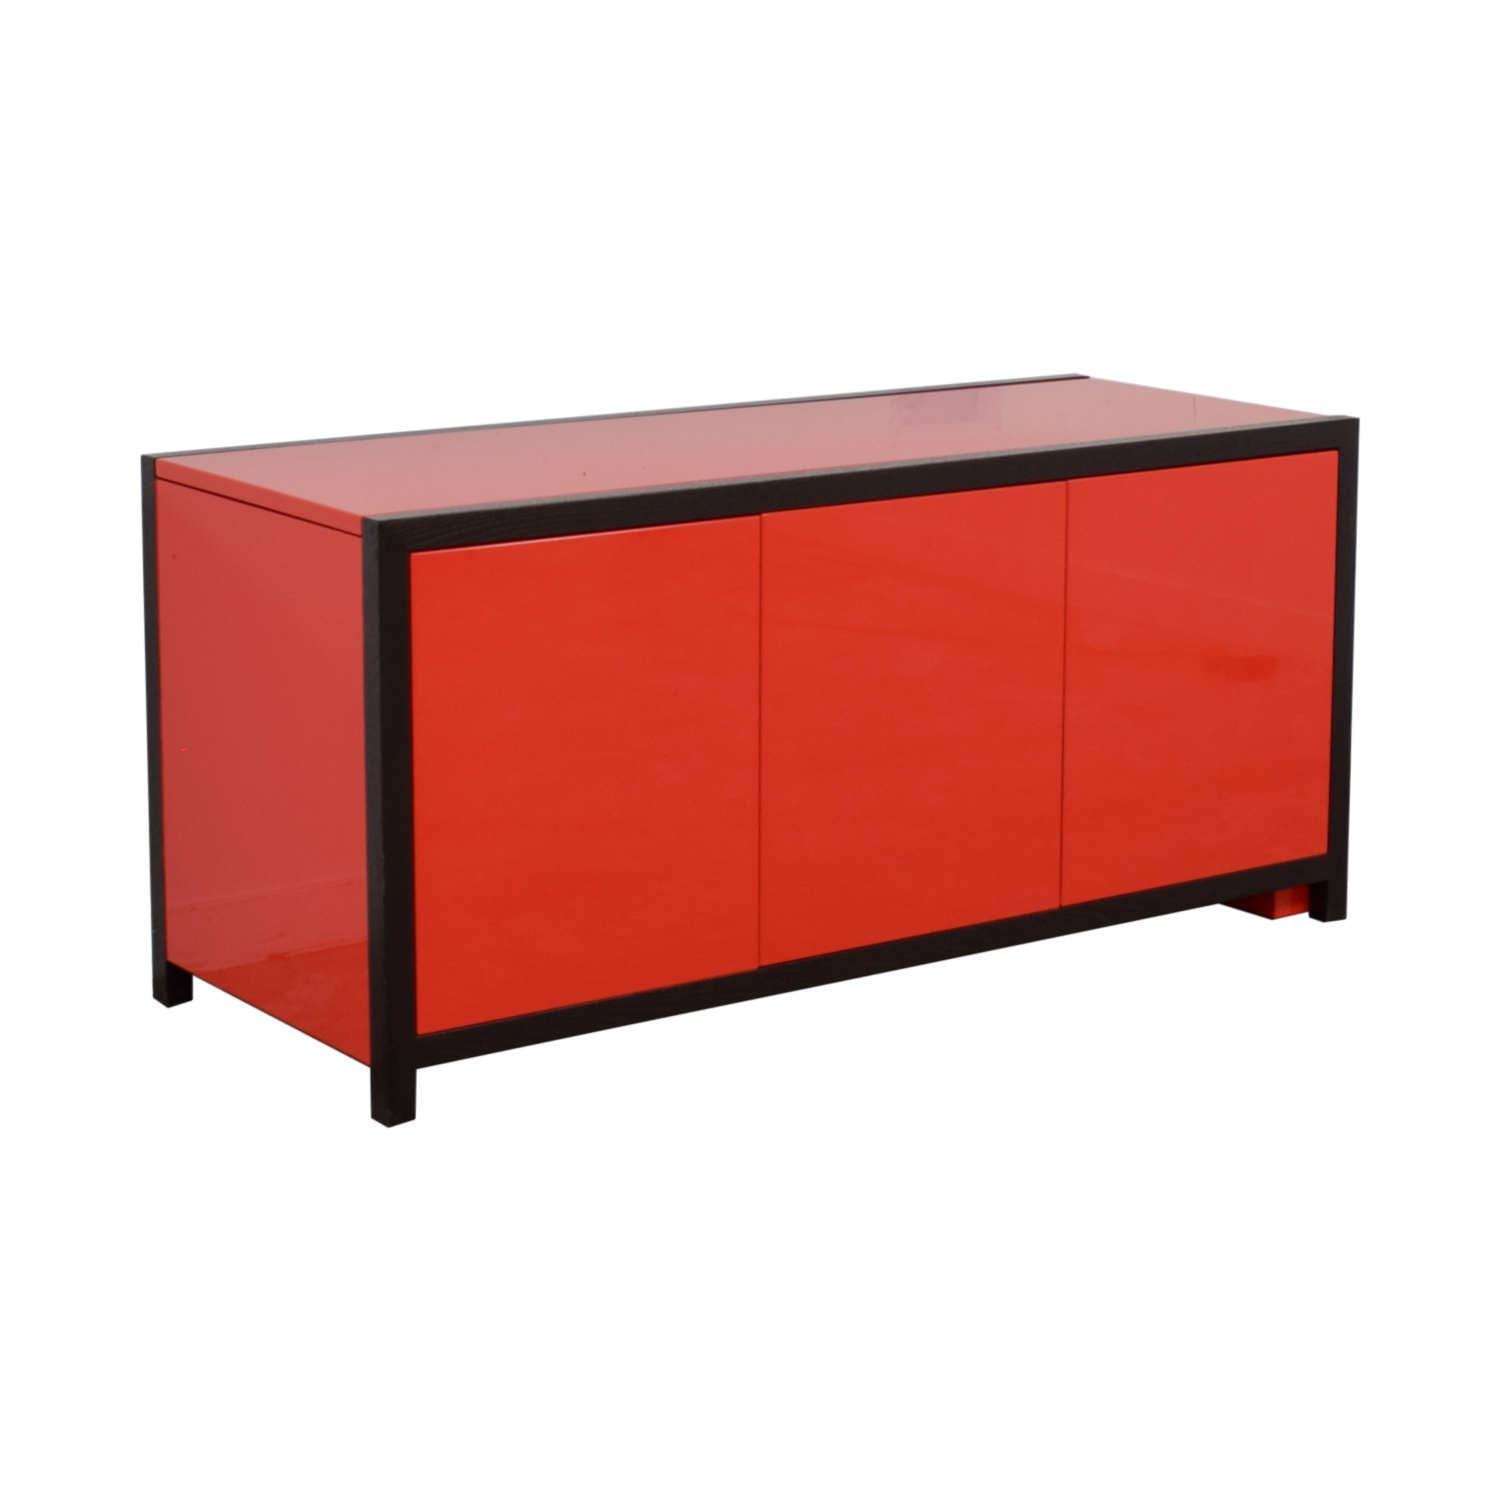 Dune Dune Modern Le Mans Black and Red Cabinet to Desk coupon